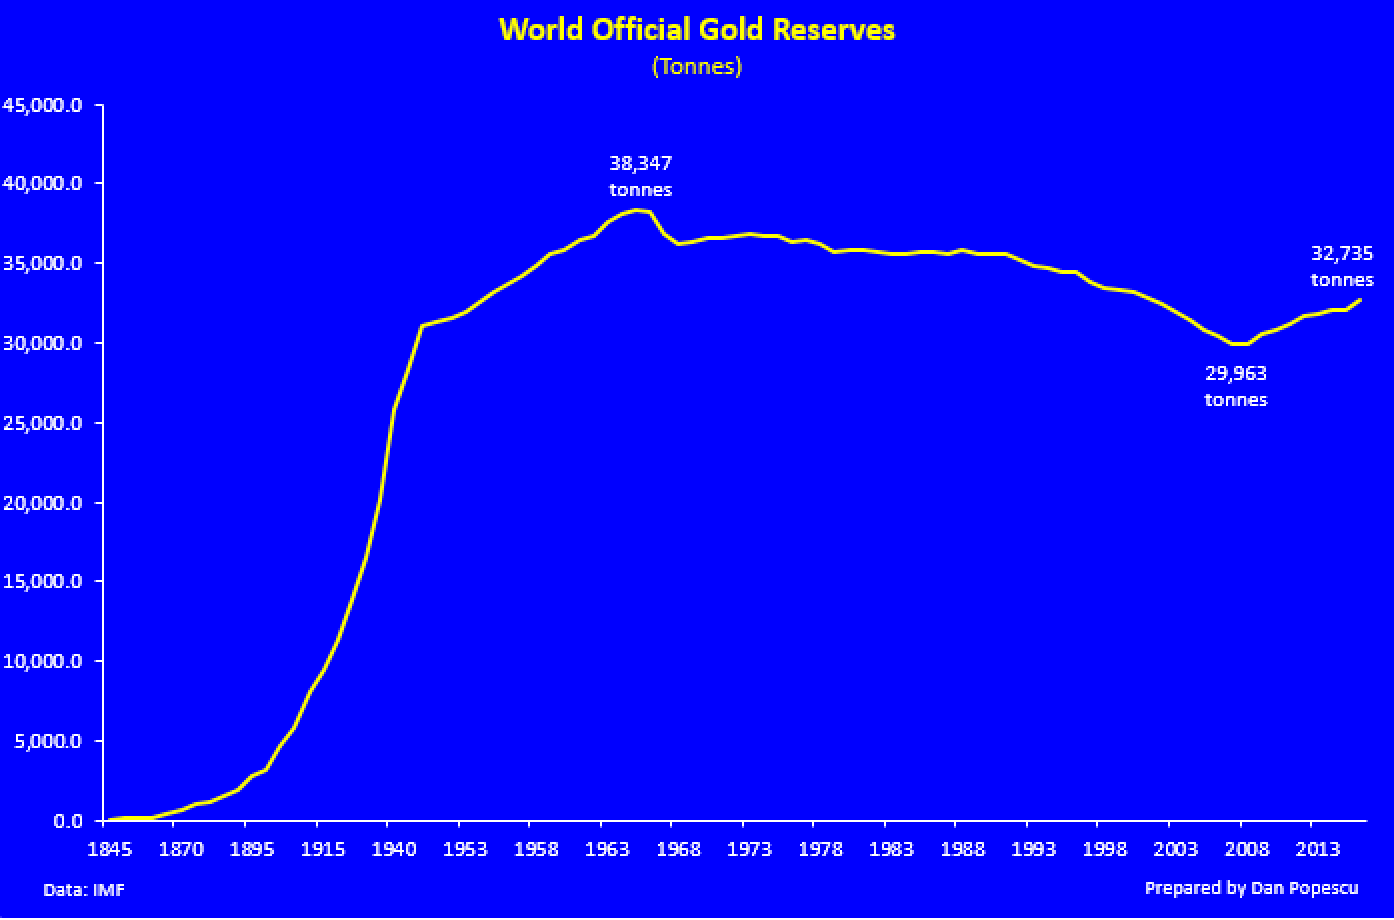 World official gold reserves